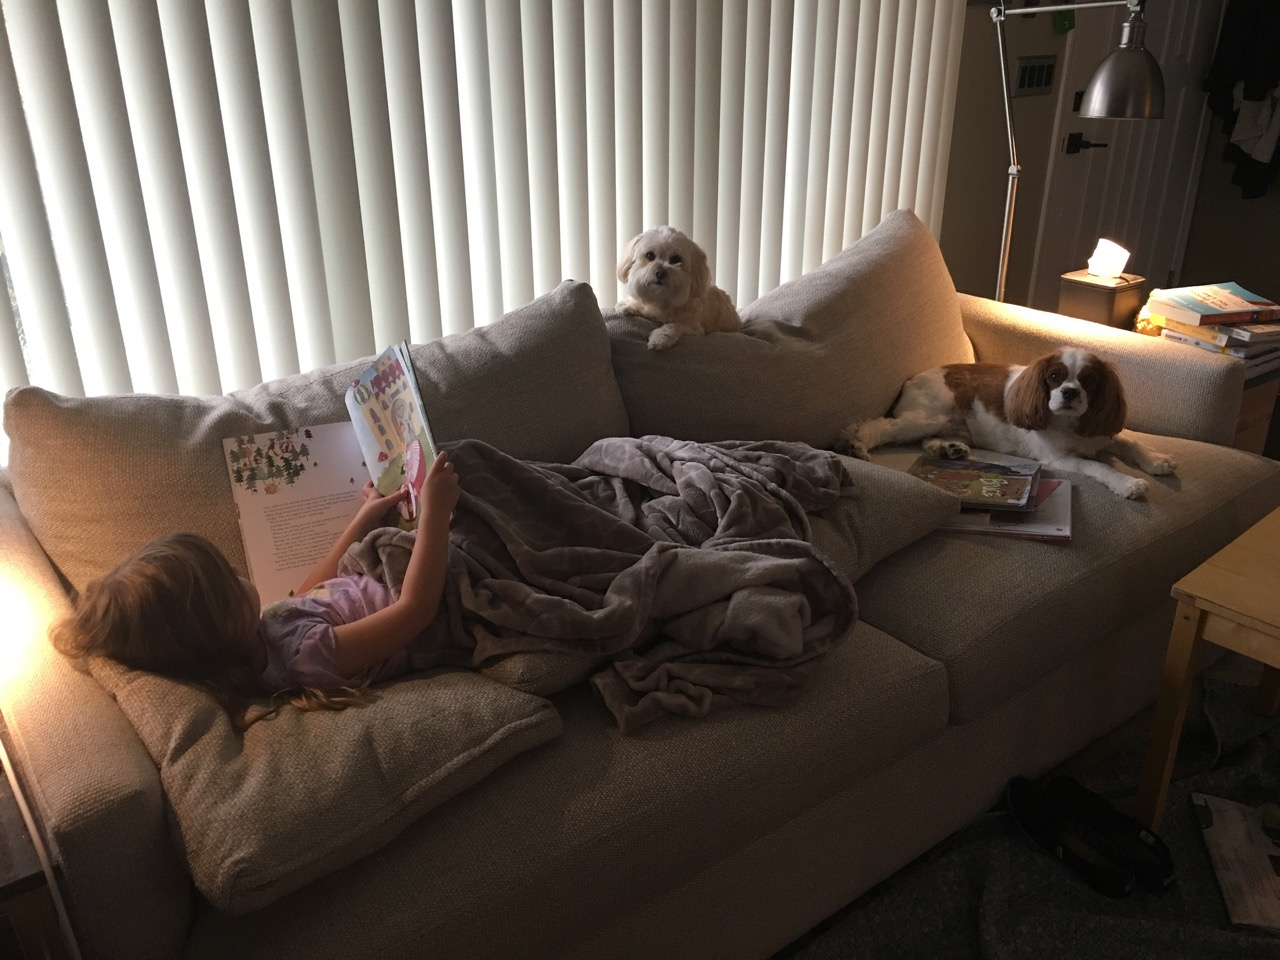 Doggies supervising quiet time reading